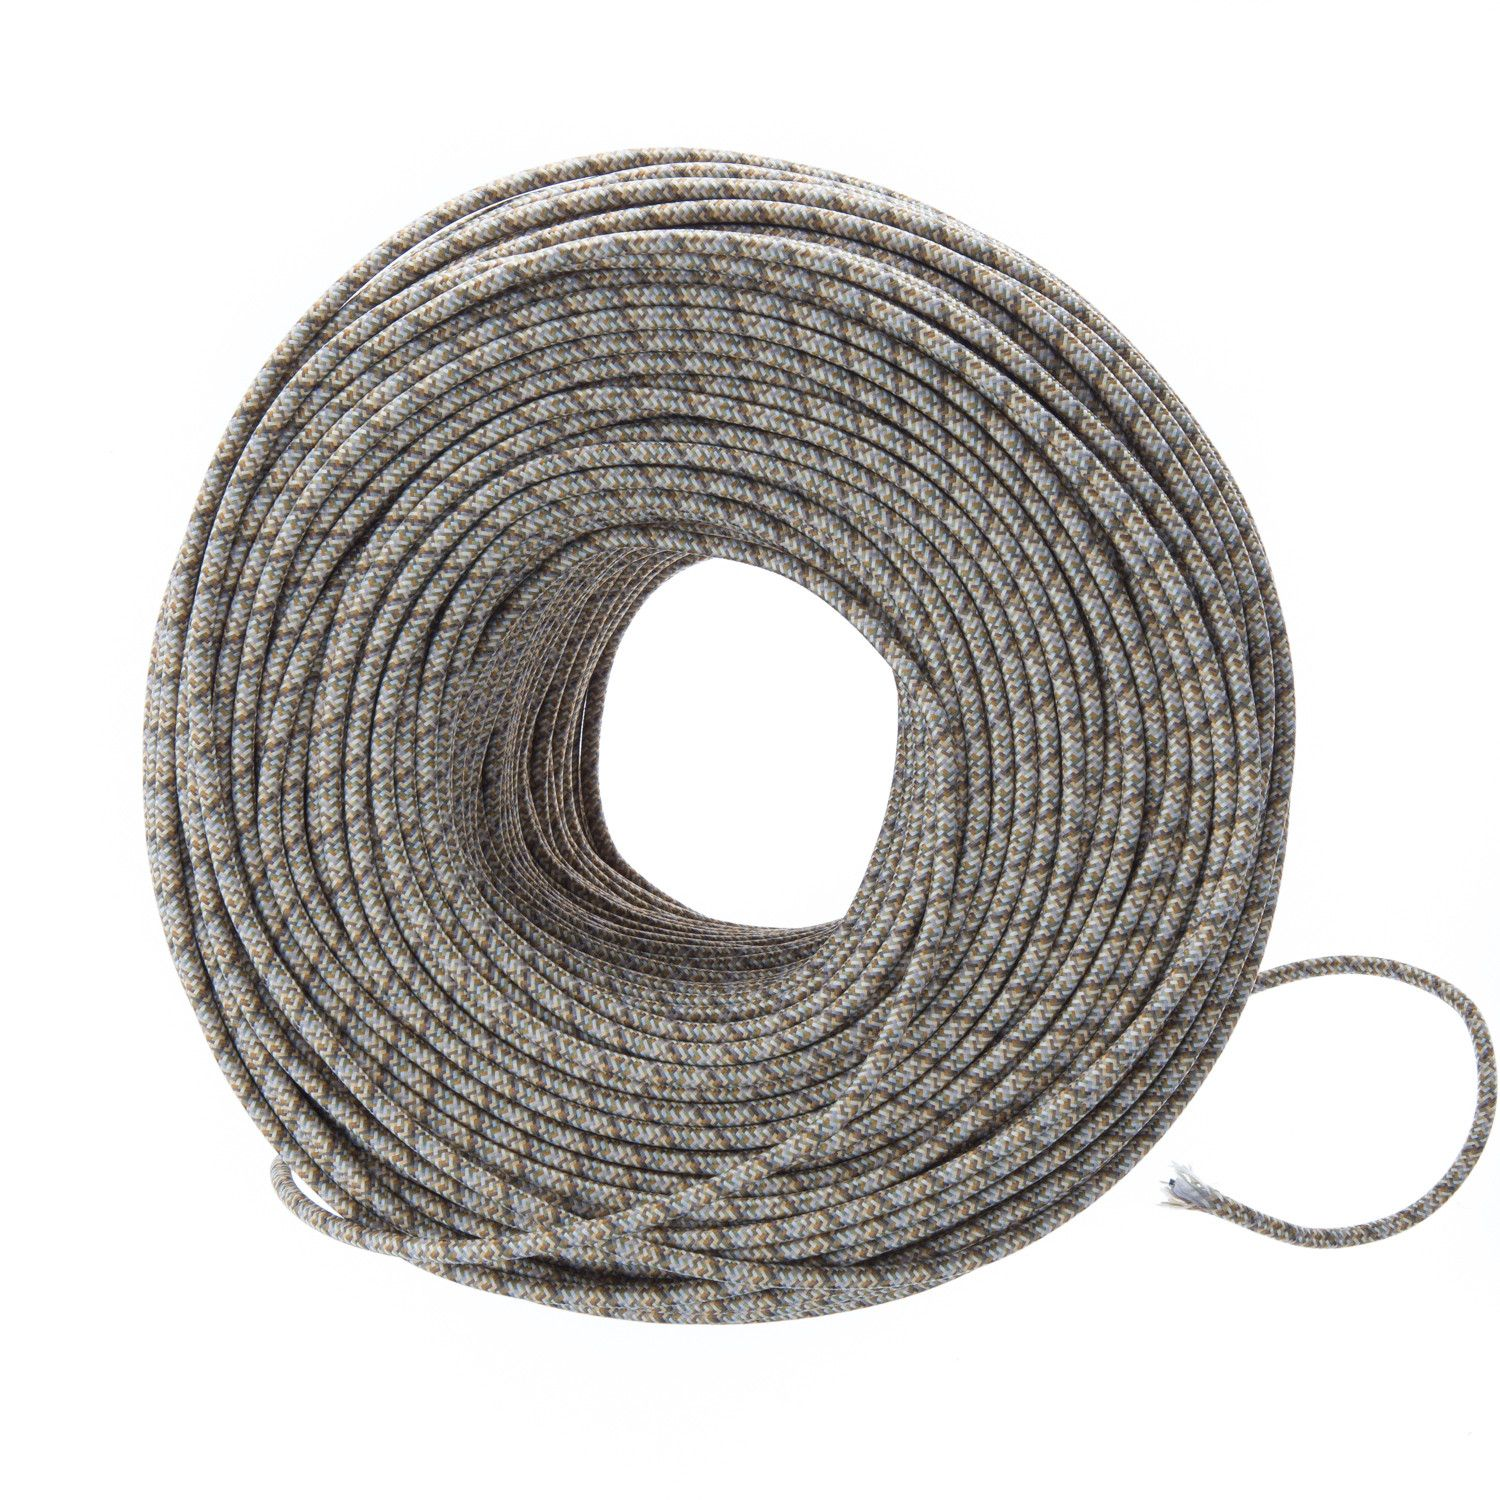 Cloth Covered Wire - Neutral Tweed | Color Cord Company